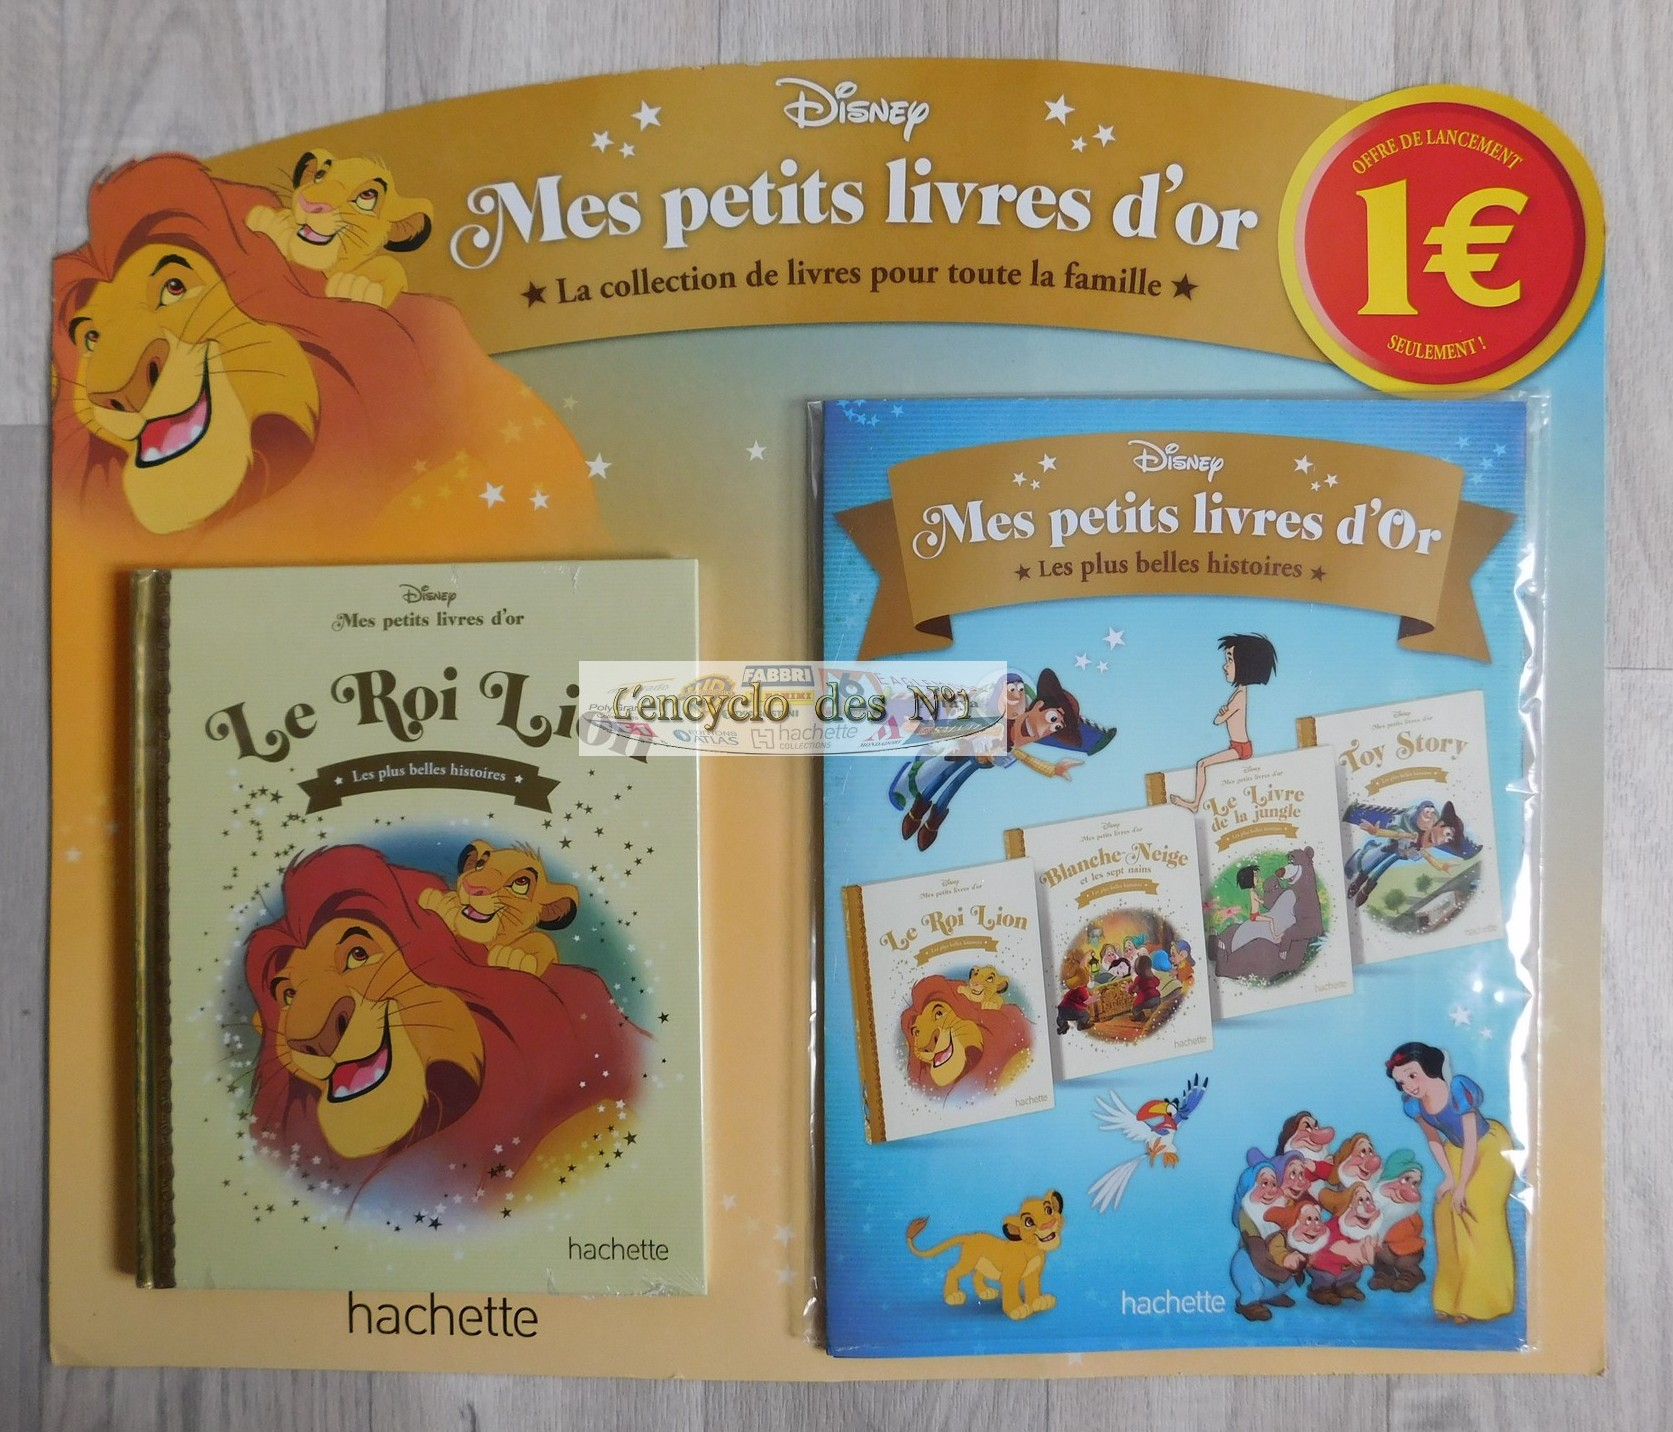 N° 1 Collection livres d'or Disney - Mars 2019 190306124932268953